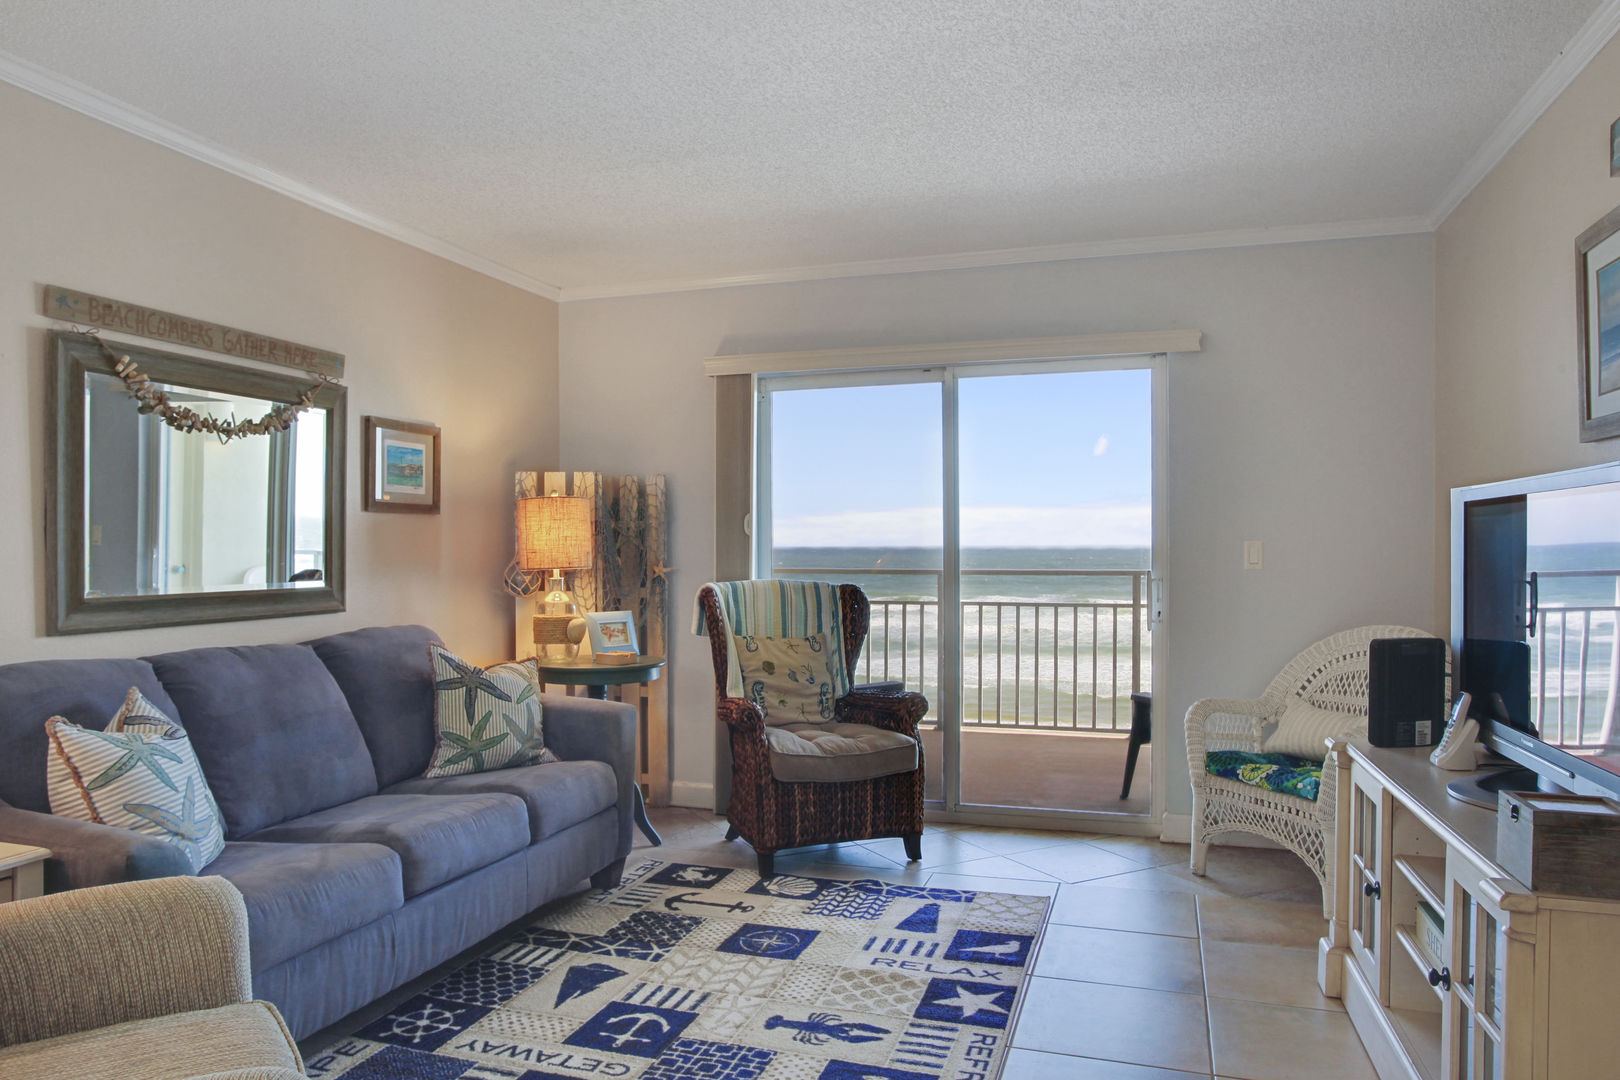 New Smyrna Beach Condo rentals with pool and ocean views